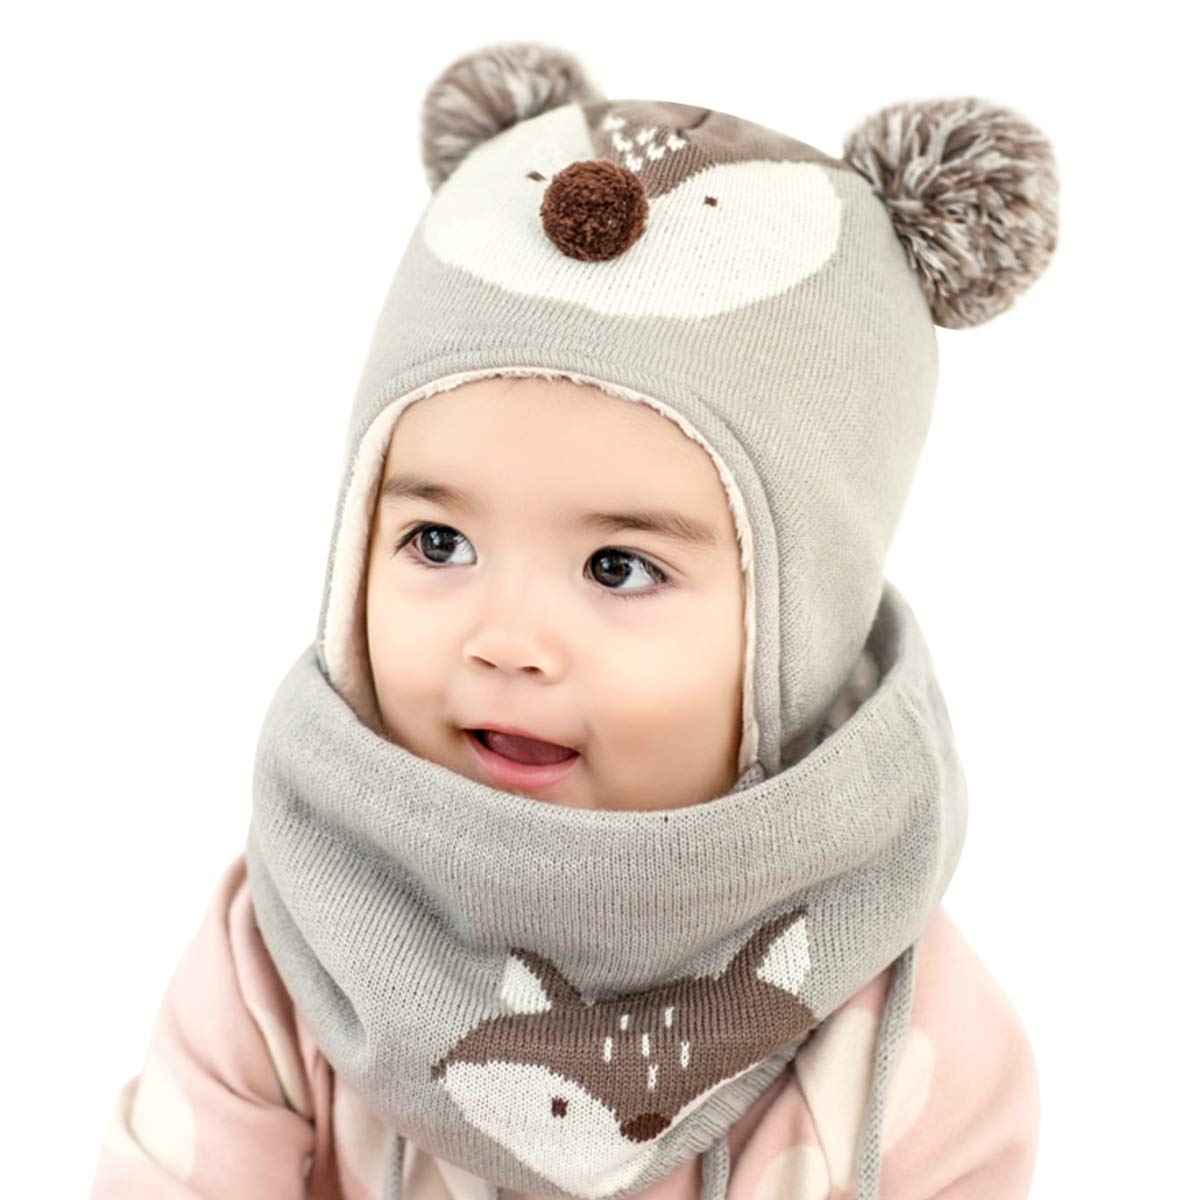 DORRISO Cute Small Foxs Caps Scarf Set Autumn Winter Kids Newborn Baby Caps and Scarf Girls Boys Knitted Warm Comfortable Beanies Hat